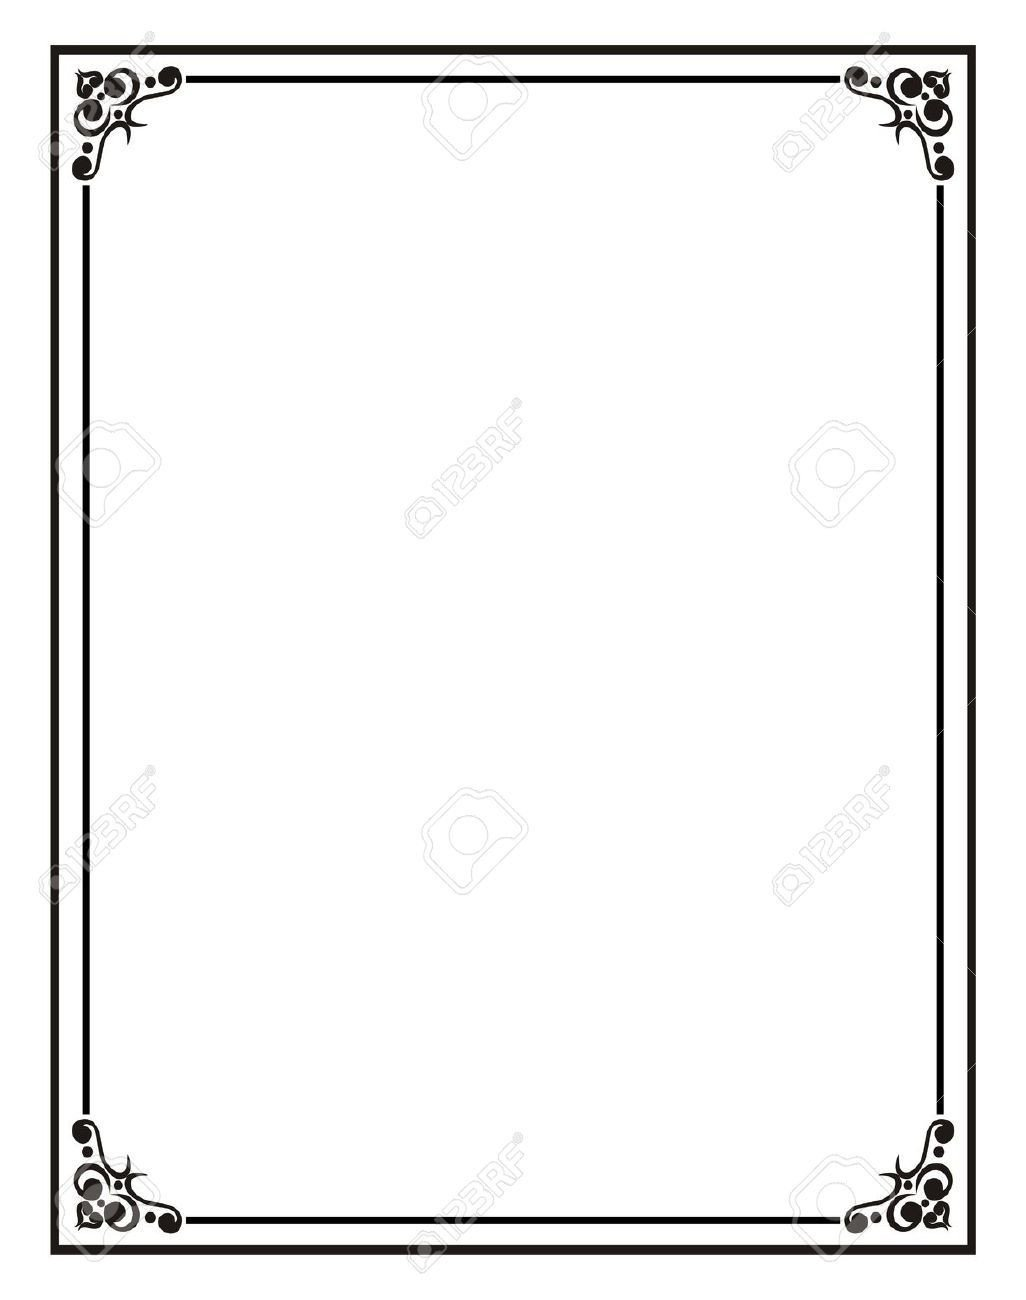 Border Template for Word Home Fice Certificate Border Stock S